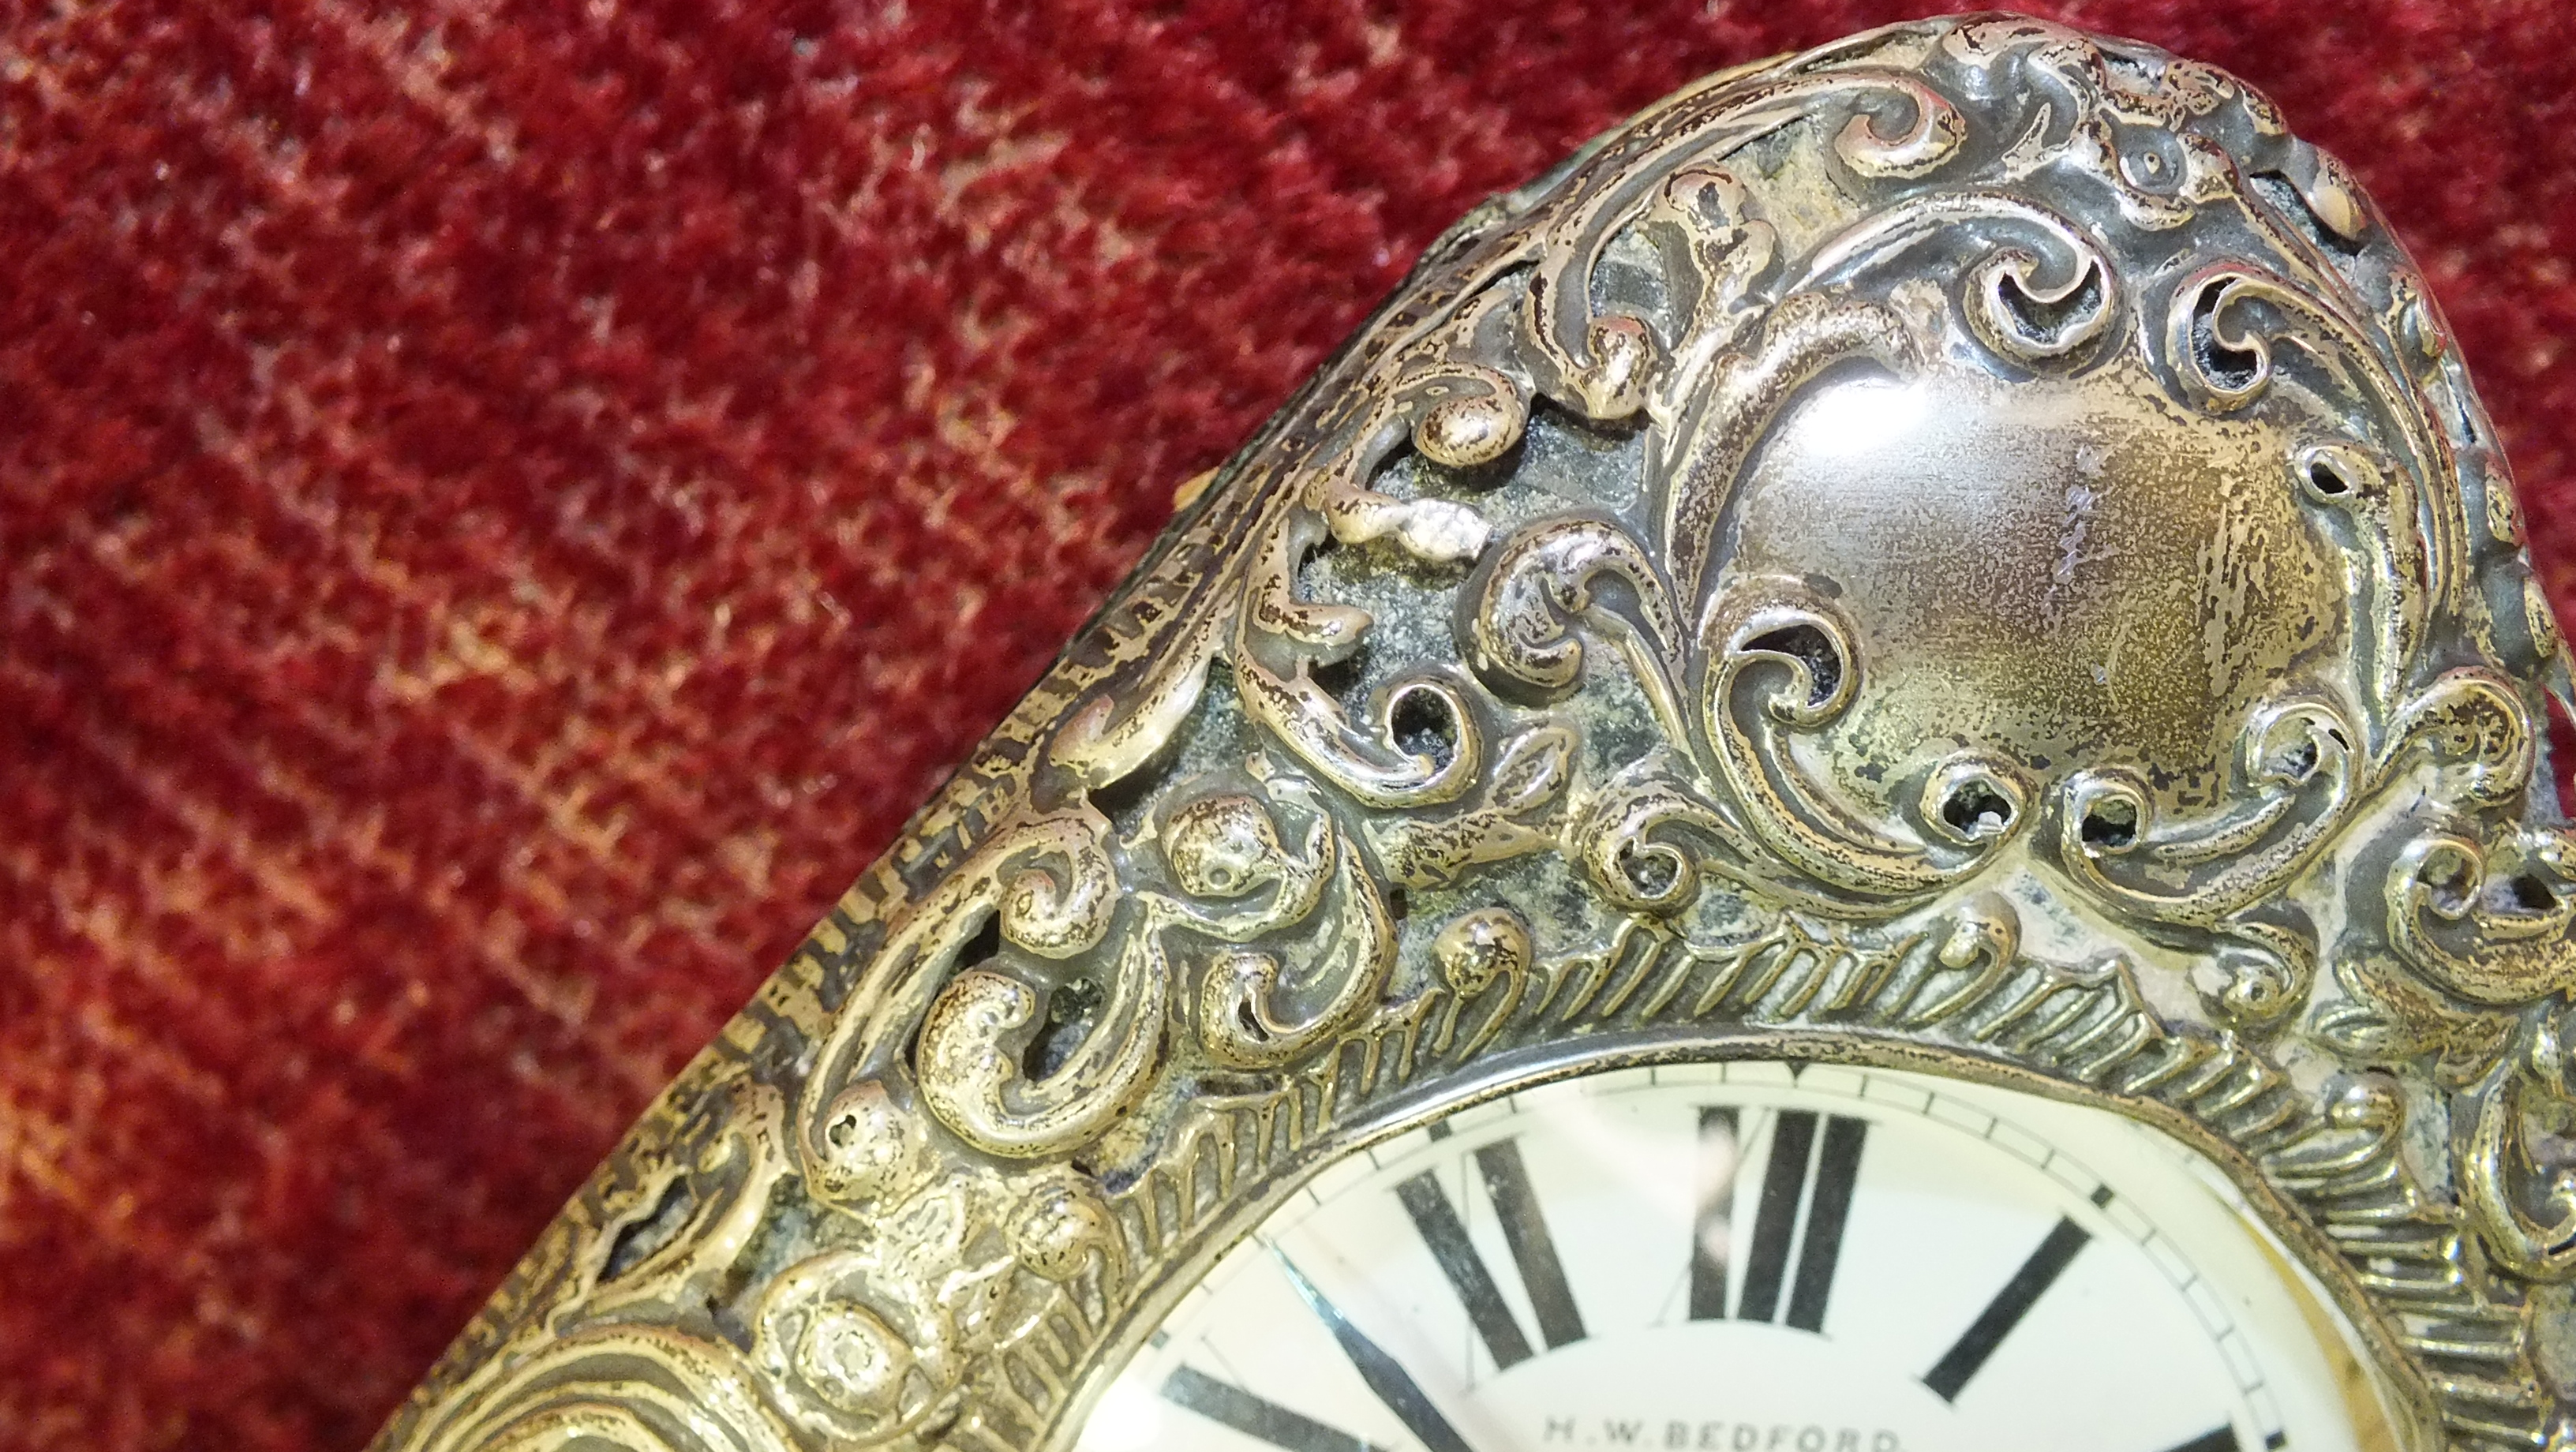 A silver embossed pocket watch holder of triangular form, Birmingham 1898, 11.5 x 11.5cm, (holes - Image 6 of 15